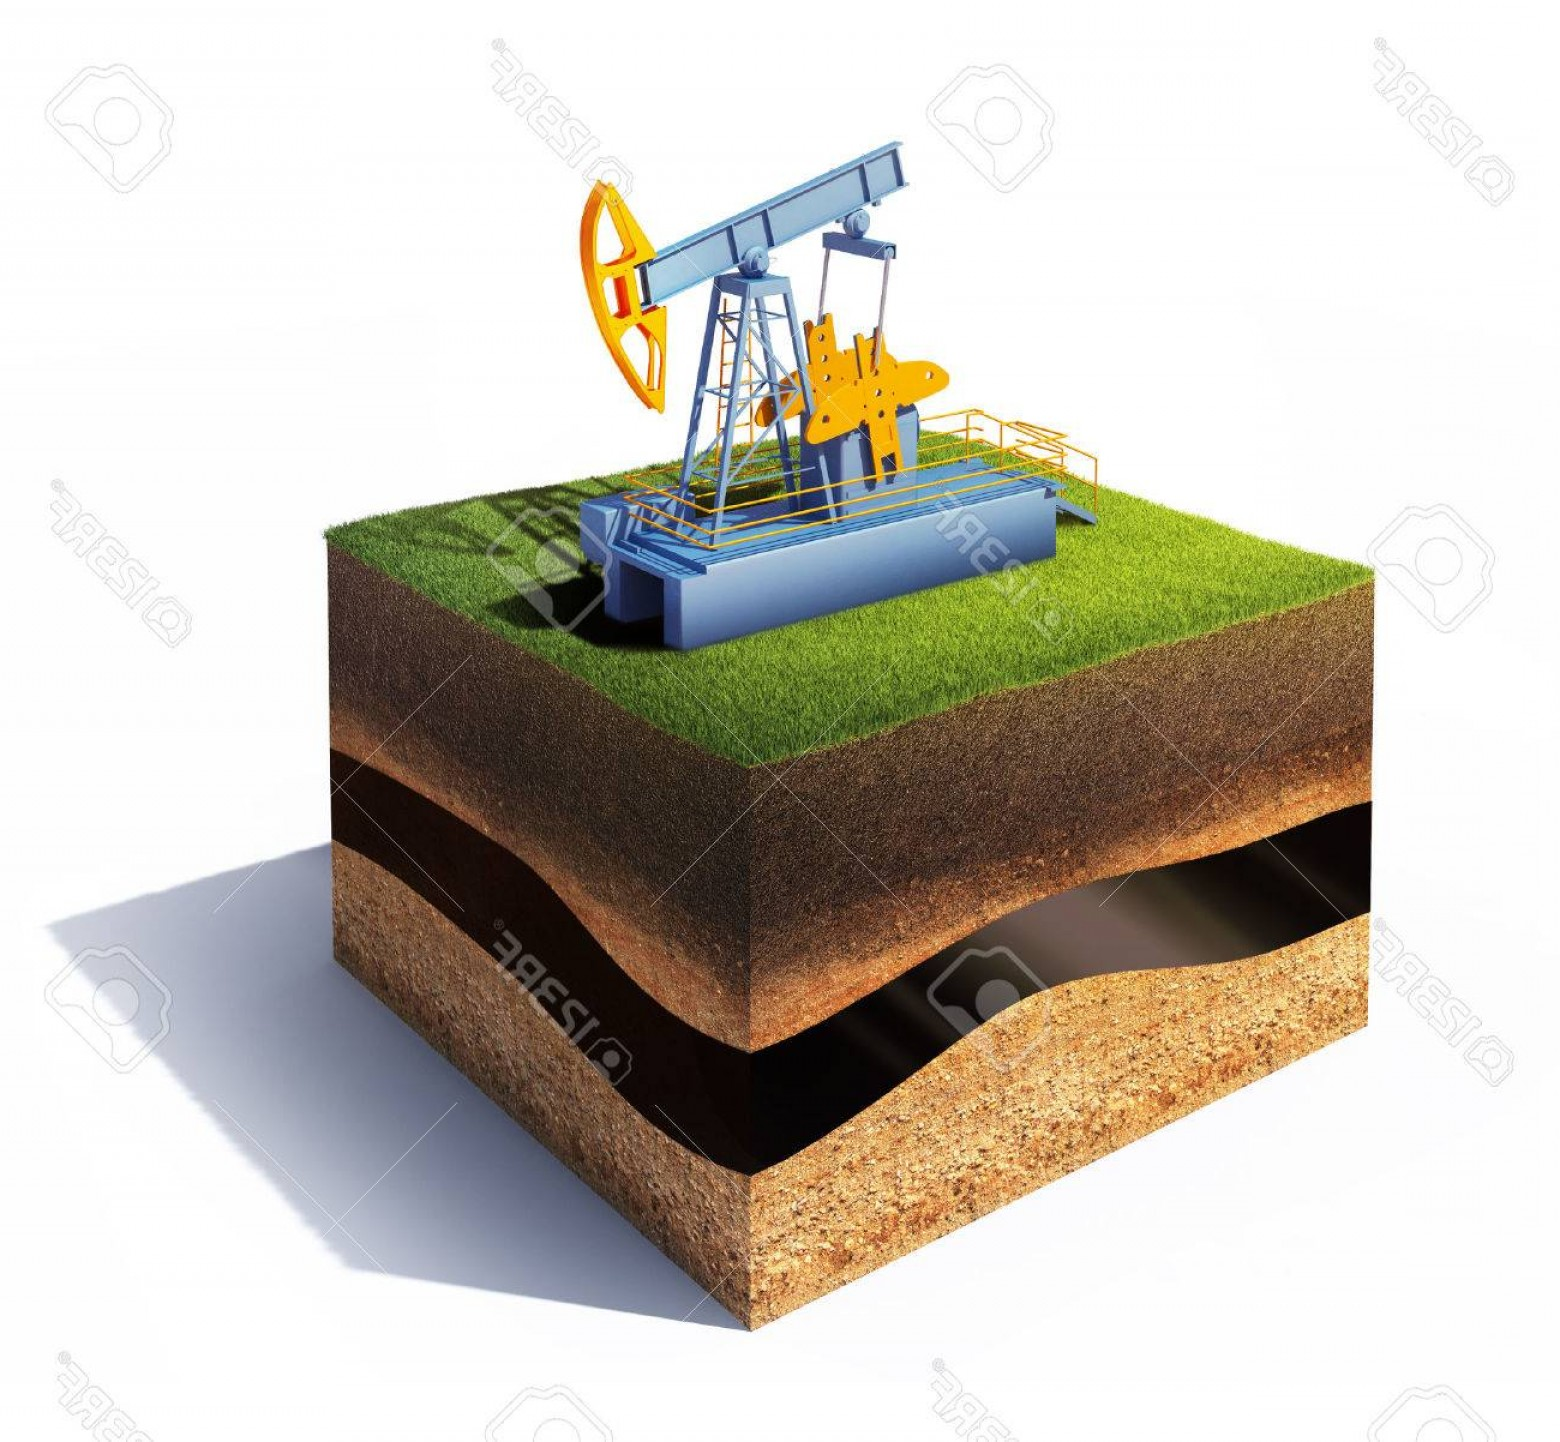 Oilfield Vector Crosses: Photod Model Of Cross Section Of Ground With Grass And Oil Pump Jack Isolated On White